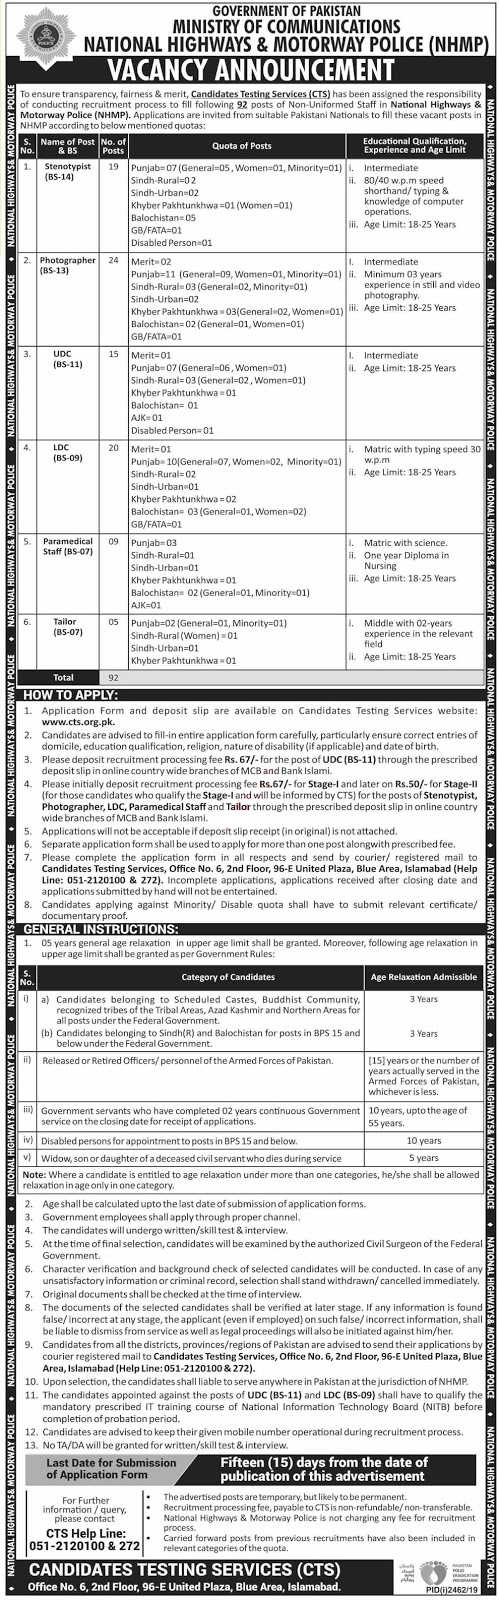 Ministry of Communications Clerical Staff Jobs 2019 Via CTS Testing Service